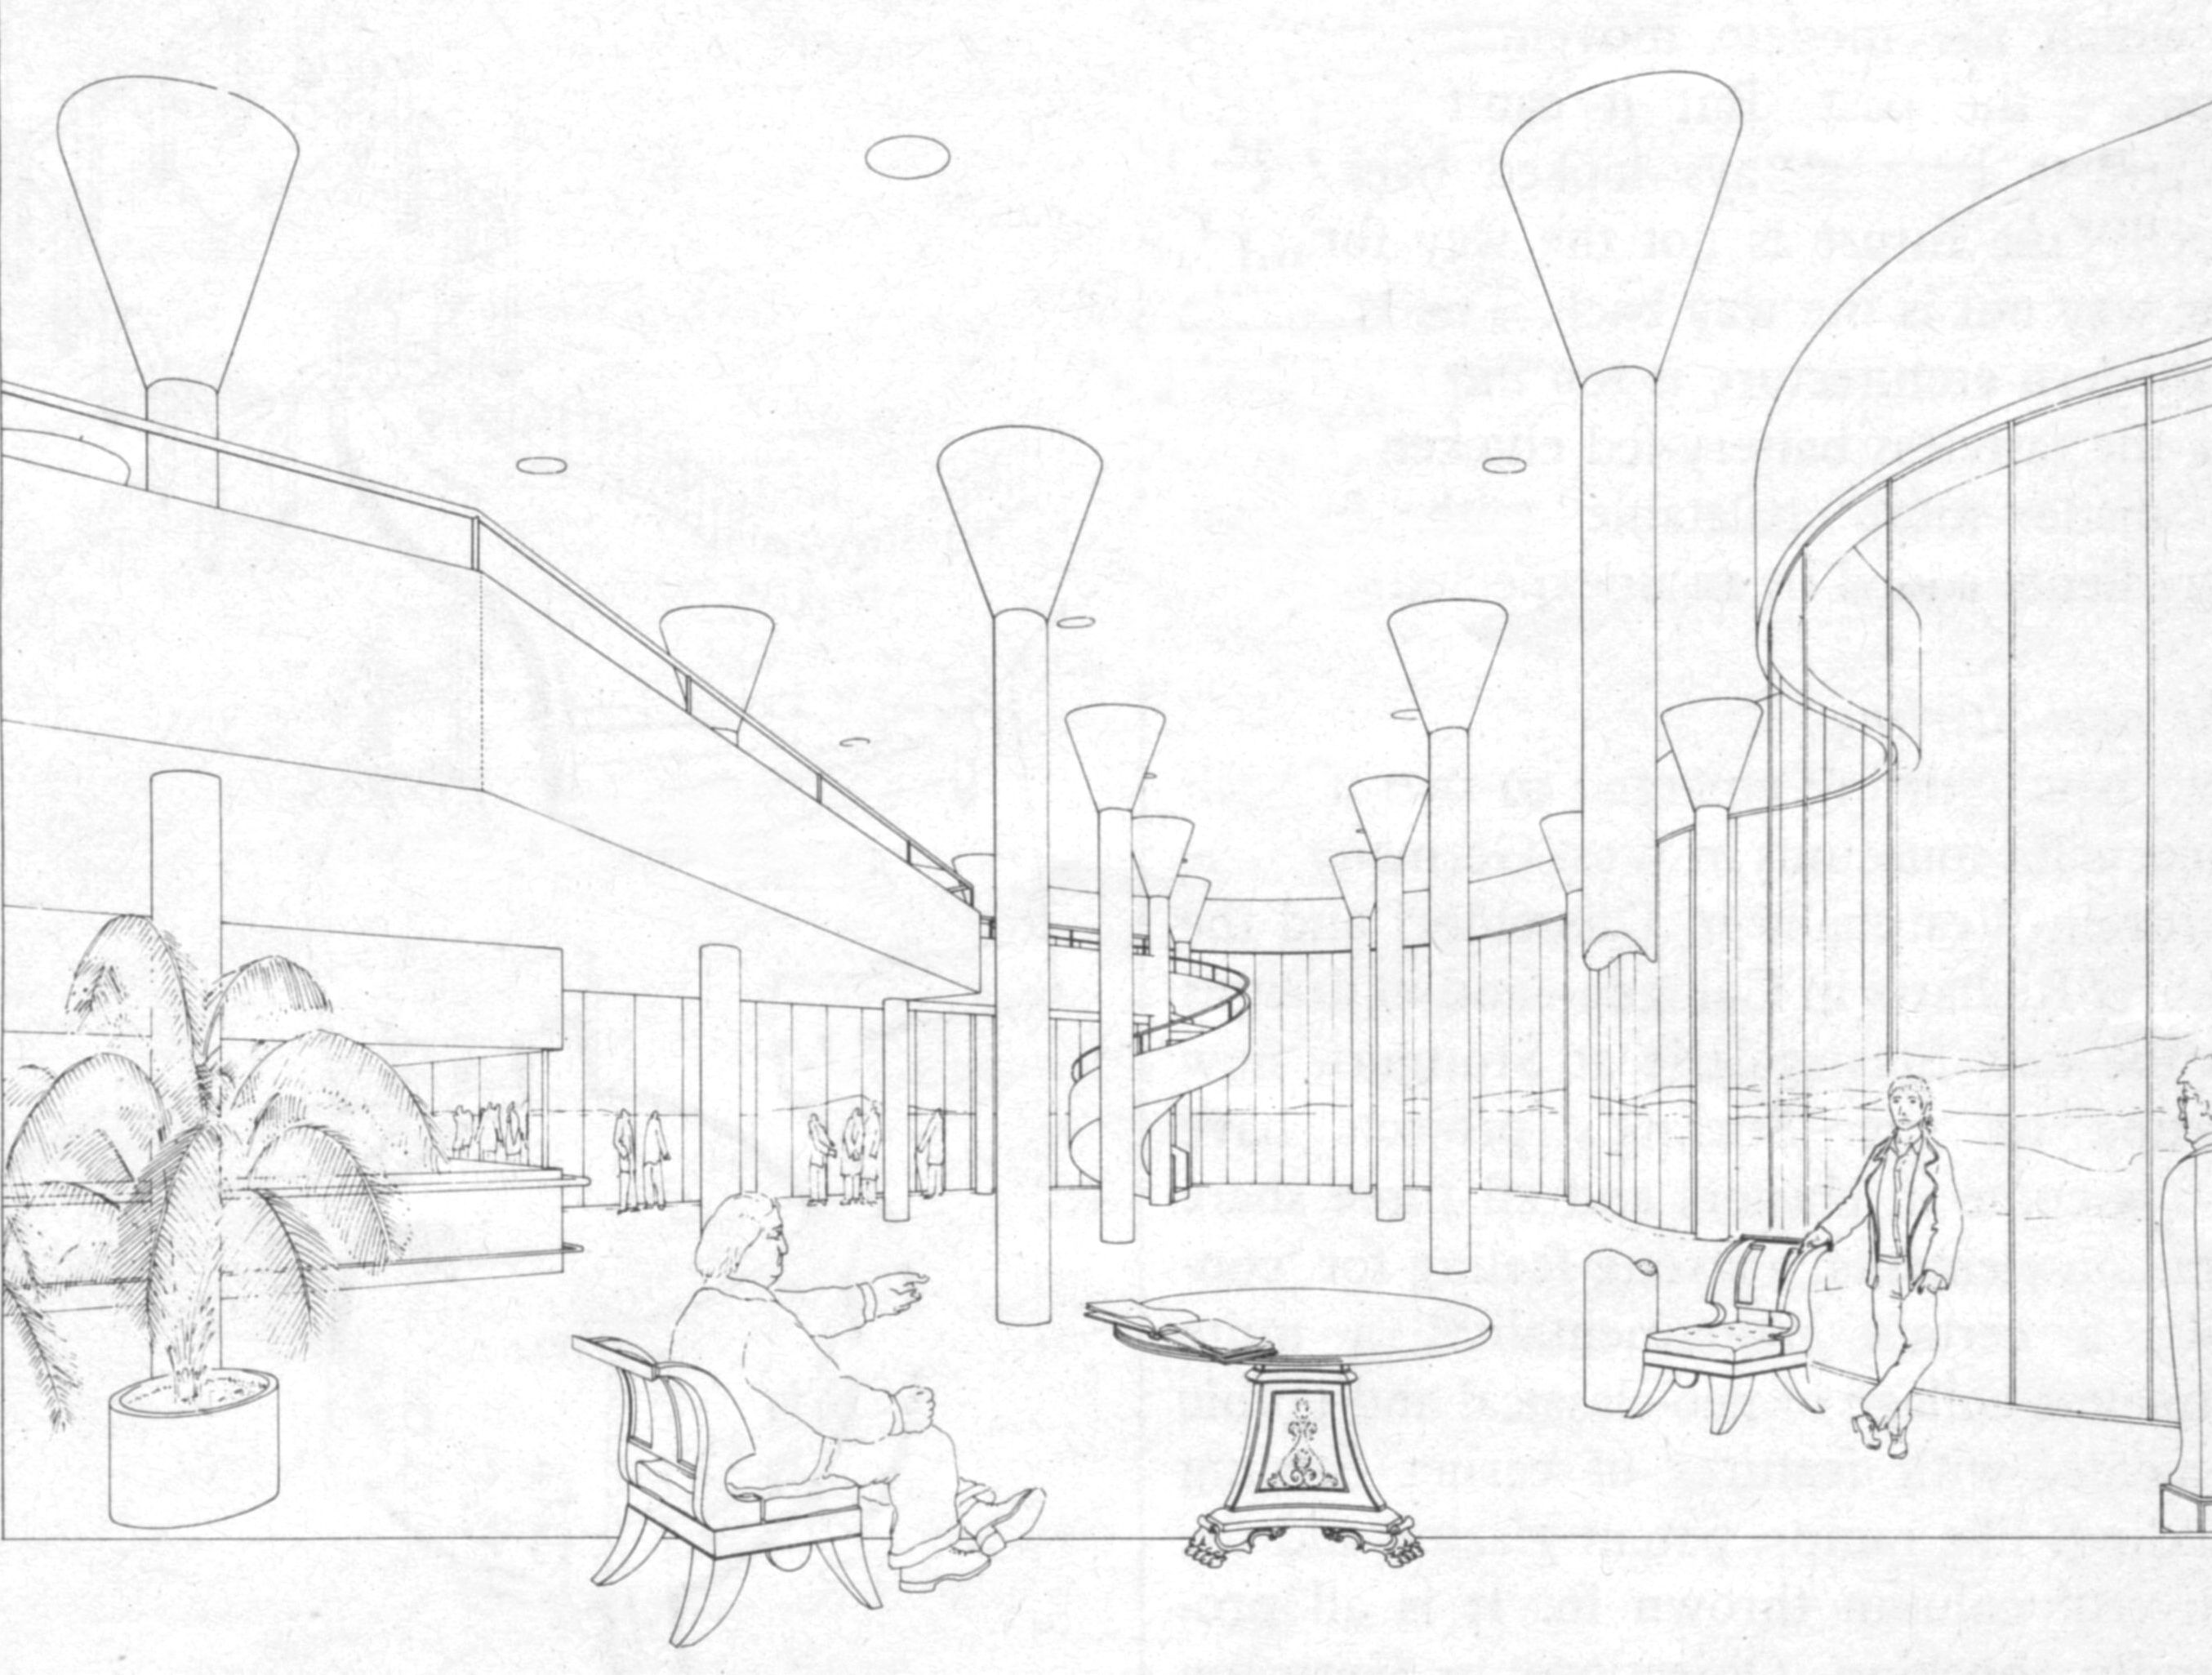 James Stirling, Olivetti Headquarters. Sketch by Leon